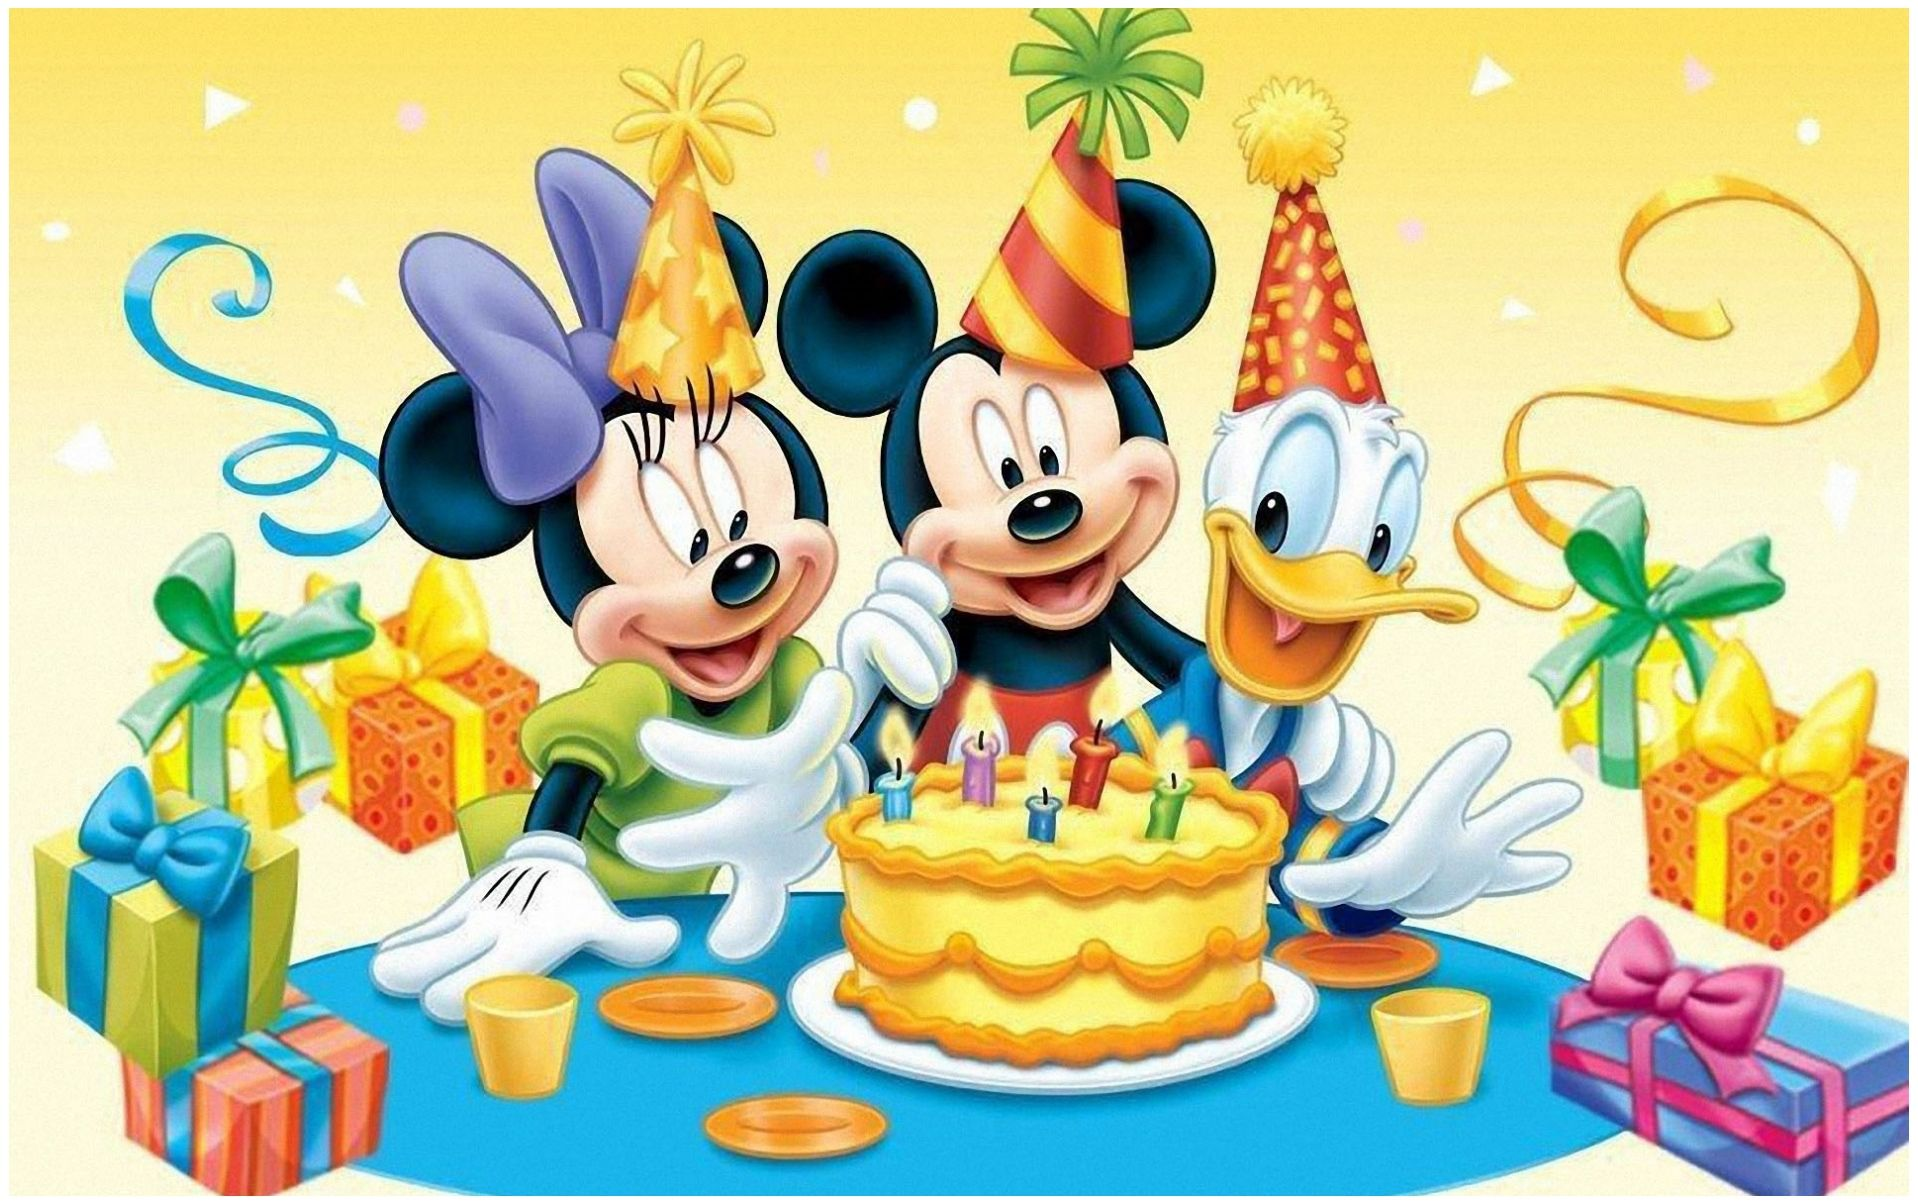 Mickey Mouse Hd Images Get Free Top Quality Mickey Mouse Hd